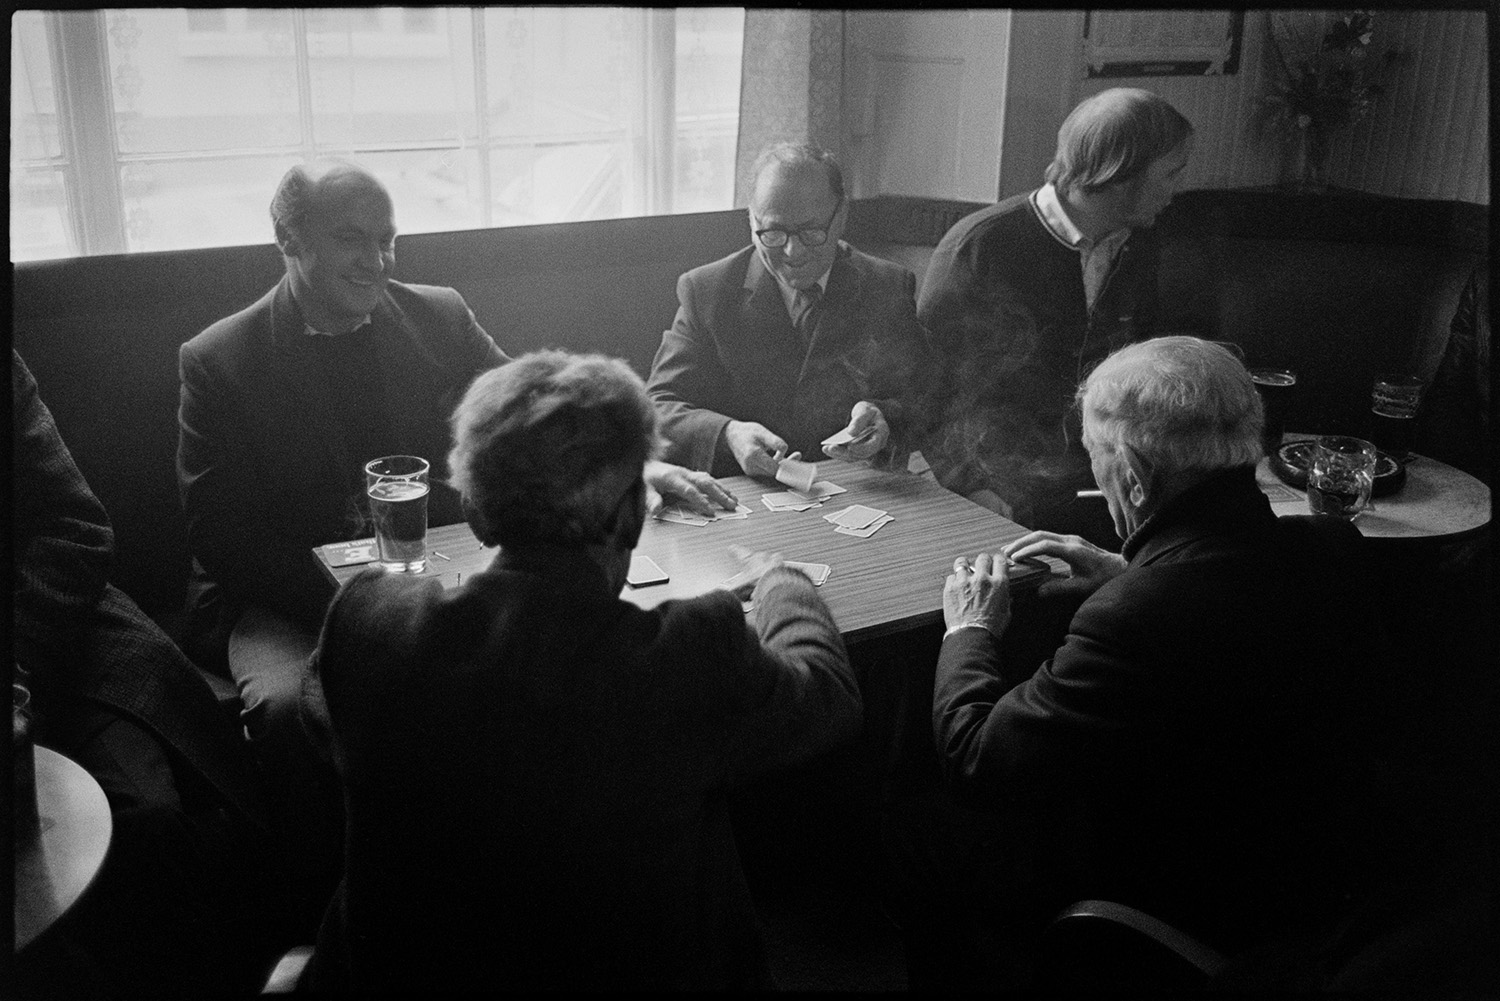 Men drinking and playing cards in pub, Torrington, December 1977. A documentary photograph by James Ravilious for the Beaford Archive.